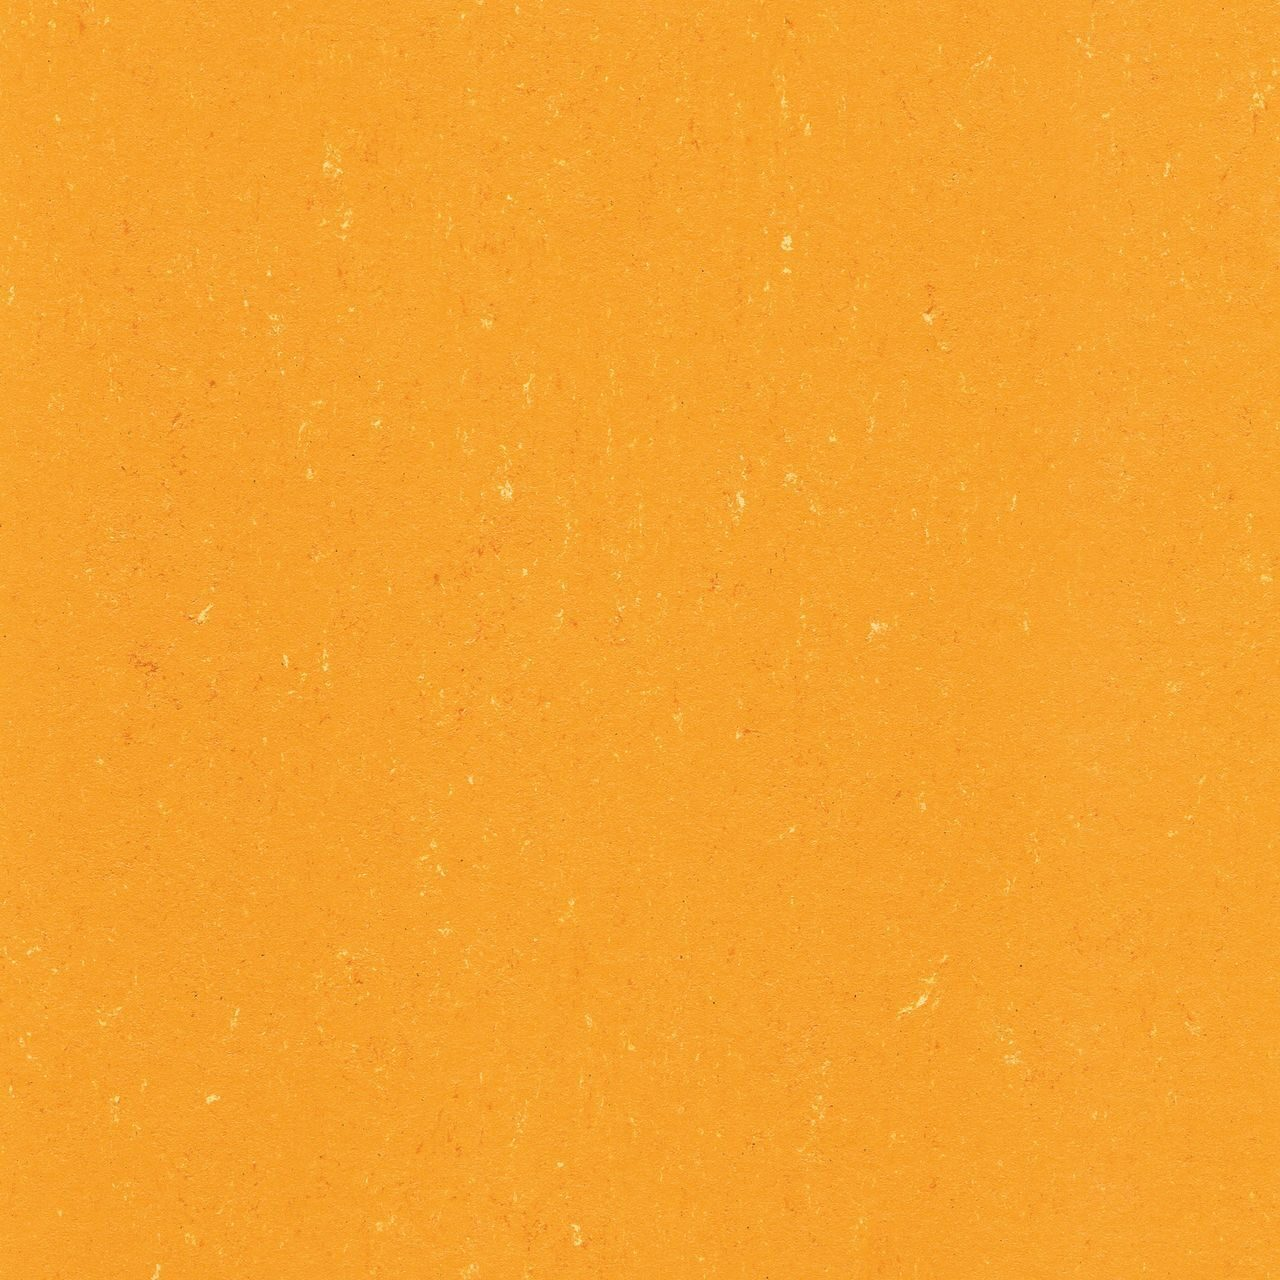 Colorette LPX/PUR 131-171 sunrise orange